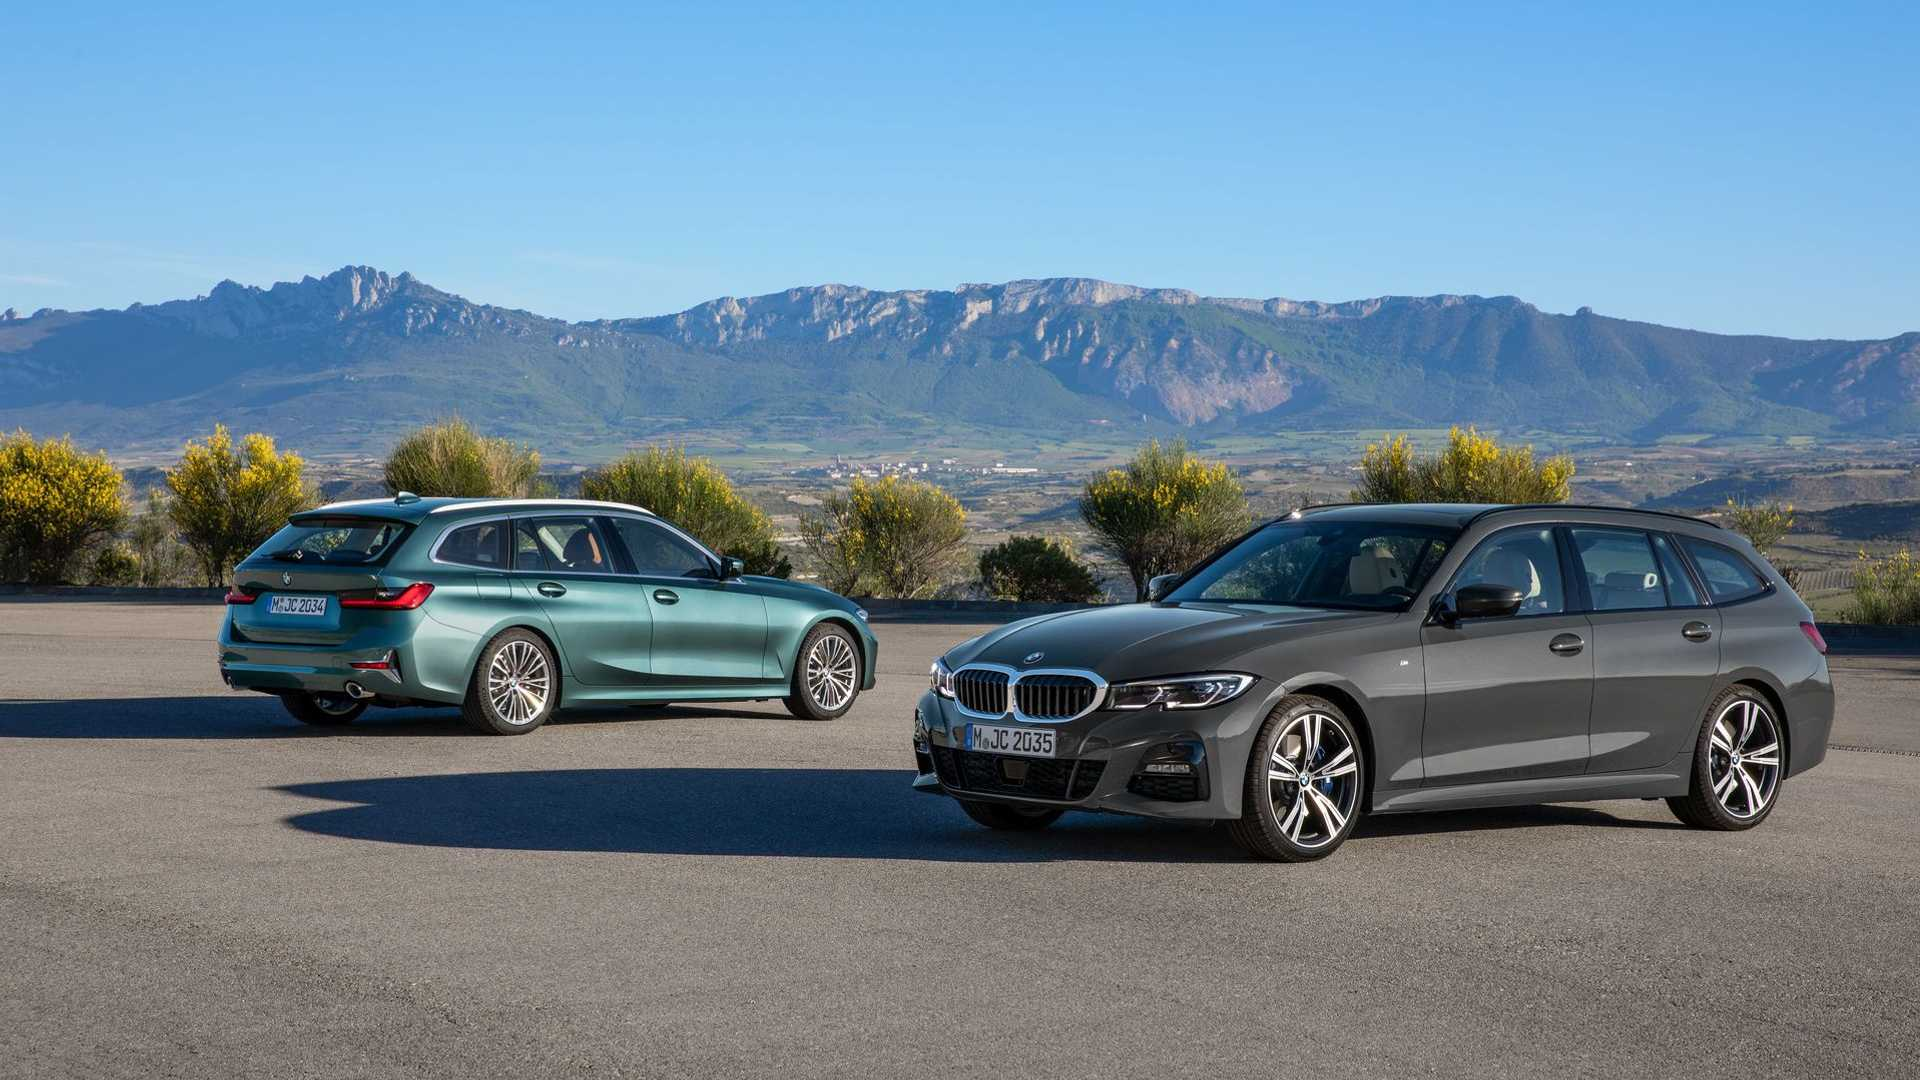 2020 BMW 3 Series Edrive Phev Redesign and Concept